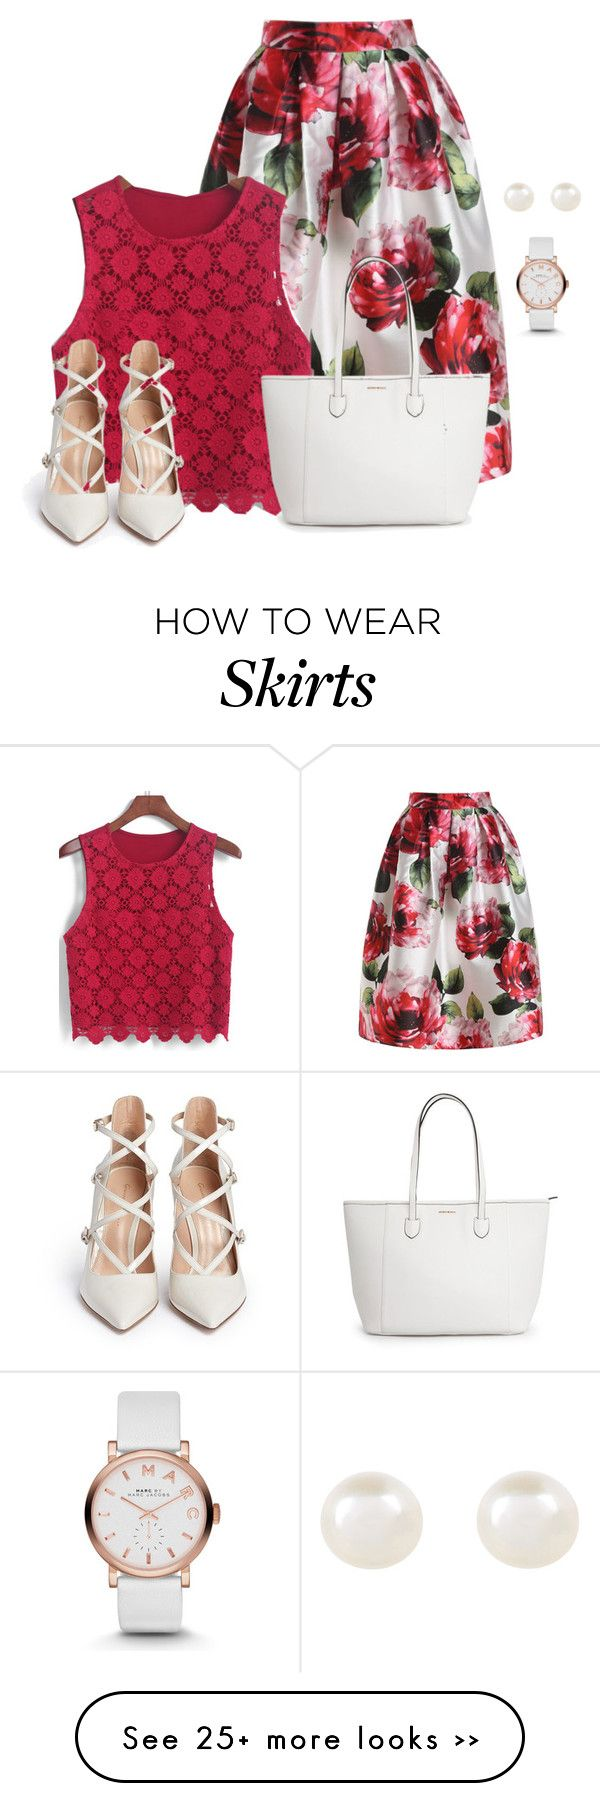 """""""Floral Flare Long Skirt"""" by allysha-fa on Polyvore featuring Accessorize, Marc by Marc Jacobs and Gianvito Rossi"""